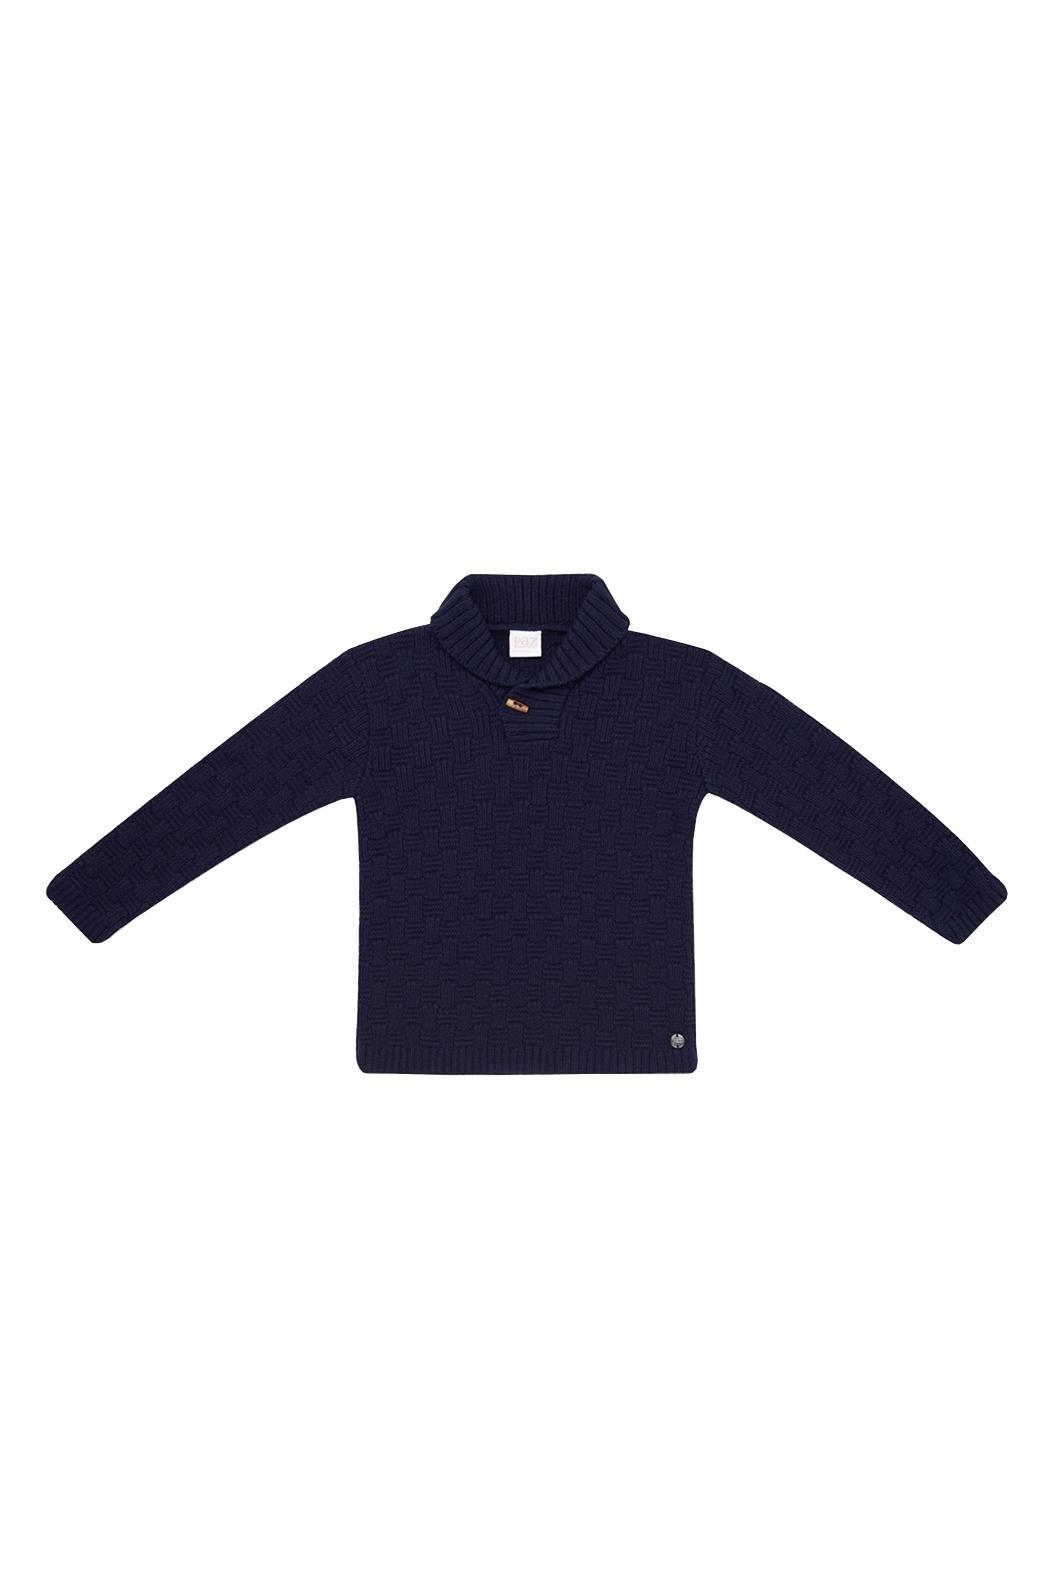 Paz Rodriguez Knitted Navy Sweater. - Main Image